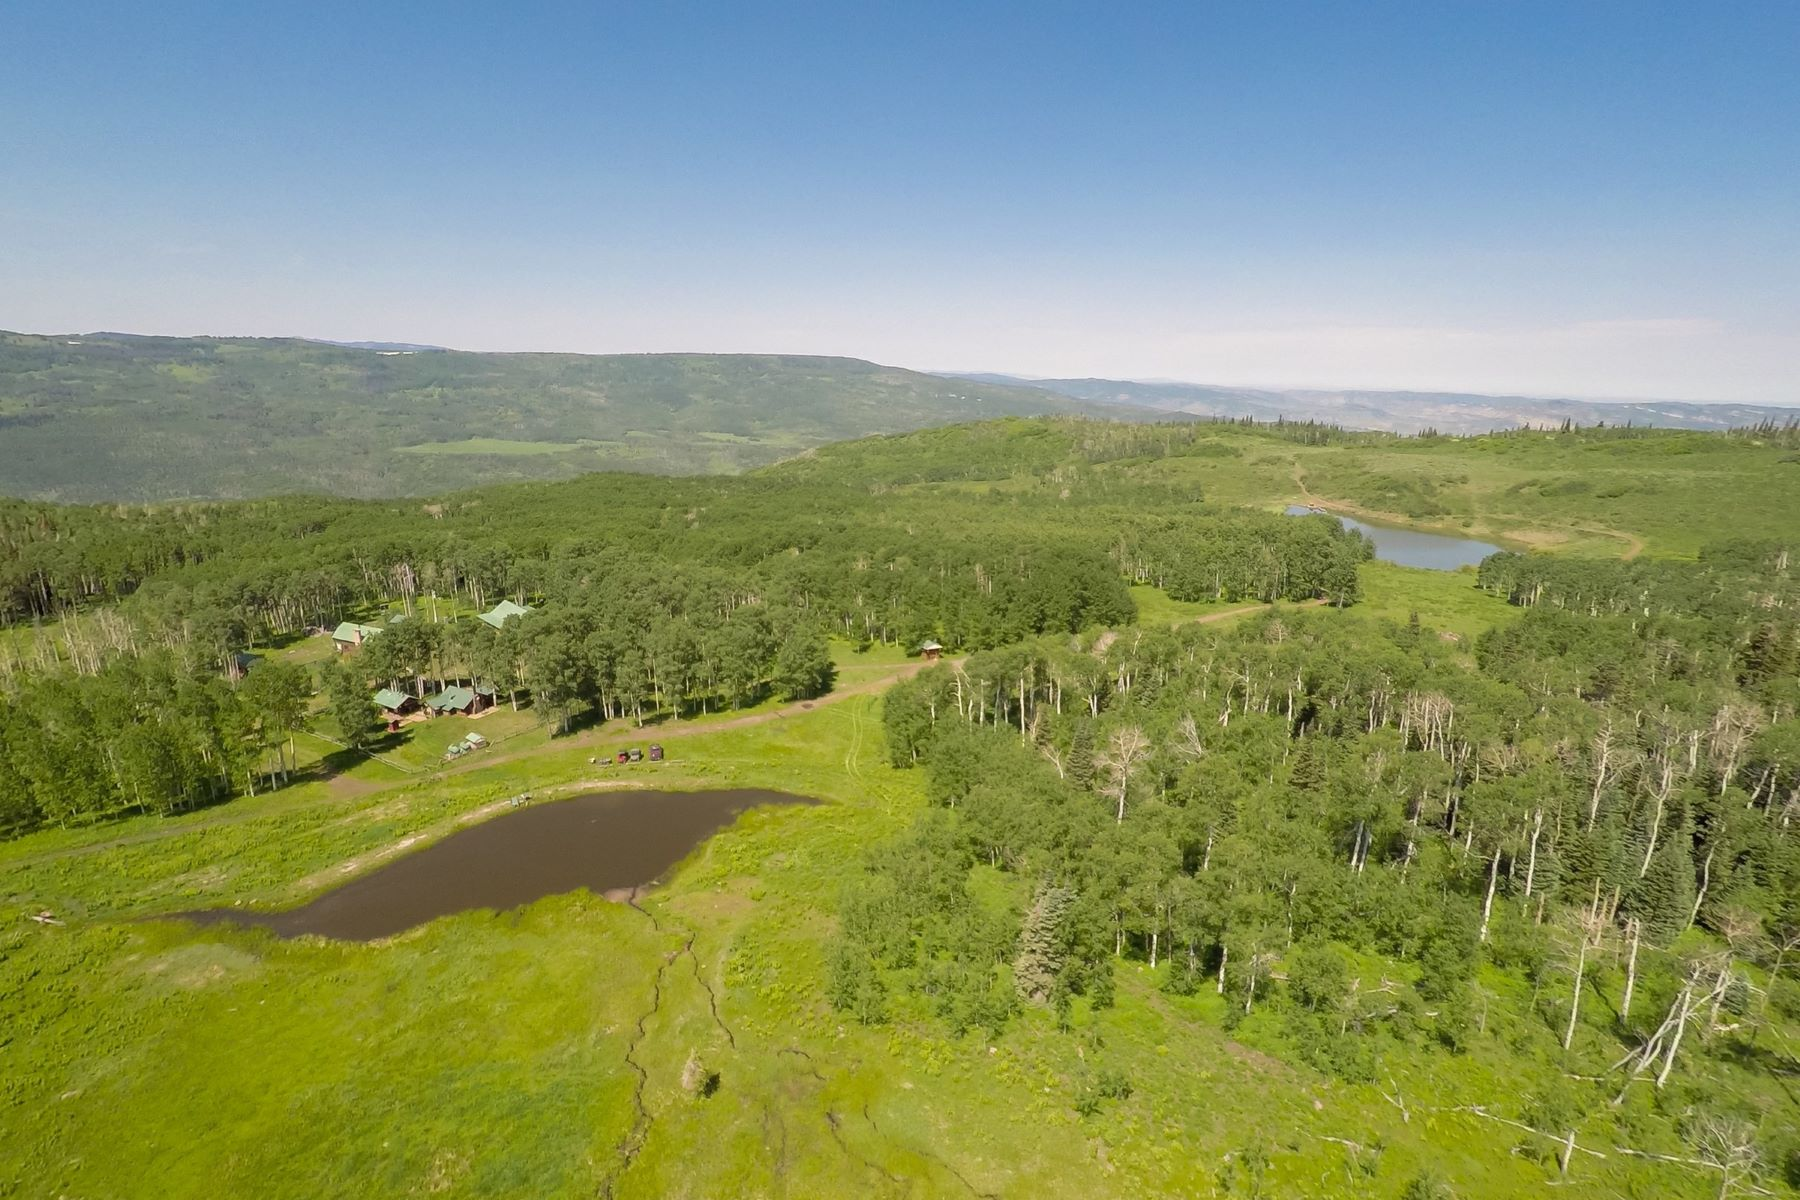 Farm / Ranch / Plantation for Sale at Dunkley Peak Ranch 10005 County Road 29 Hayden, Colorado 81639 United States